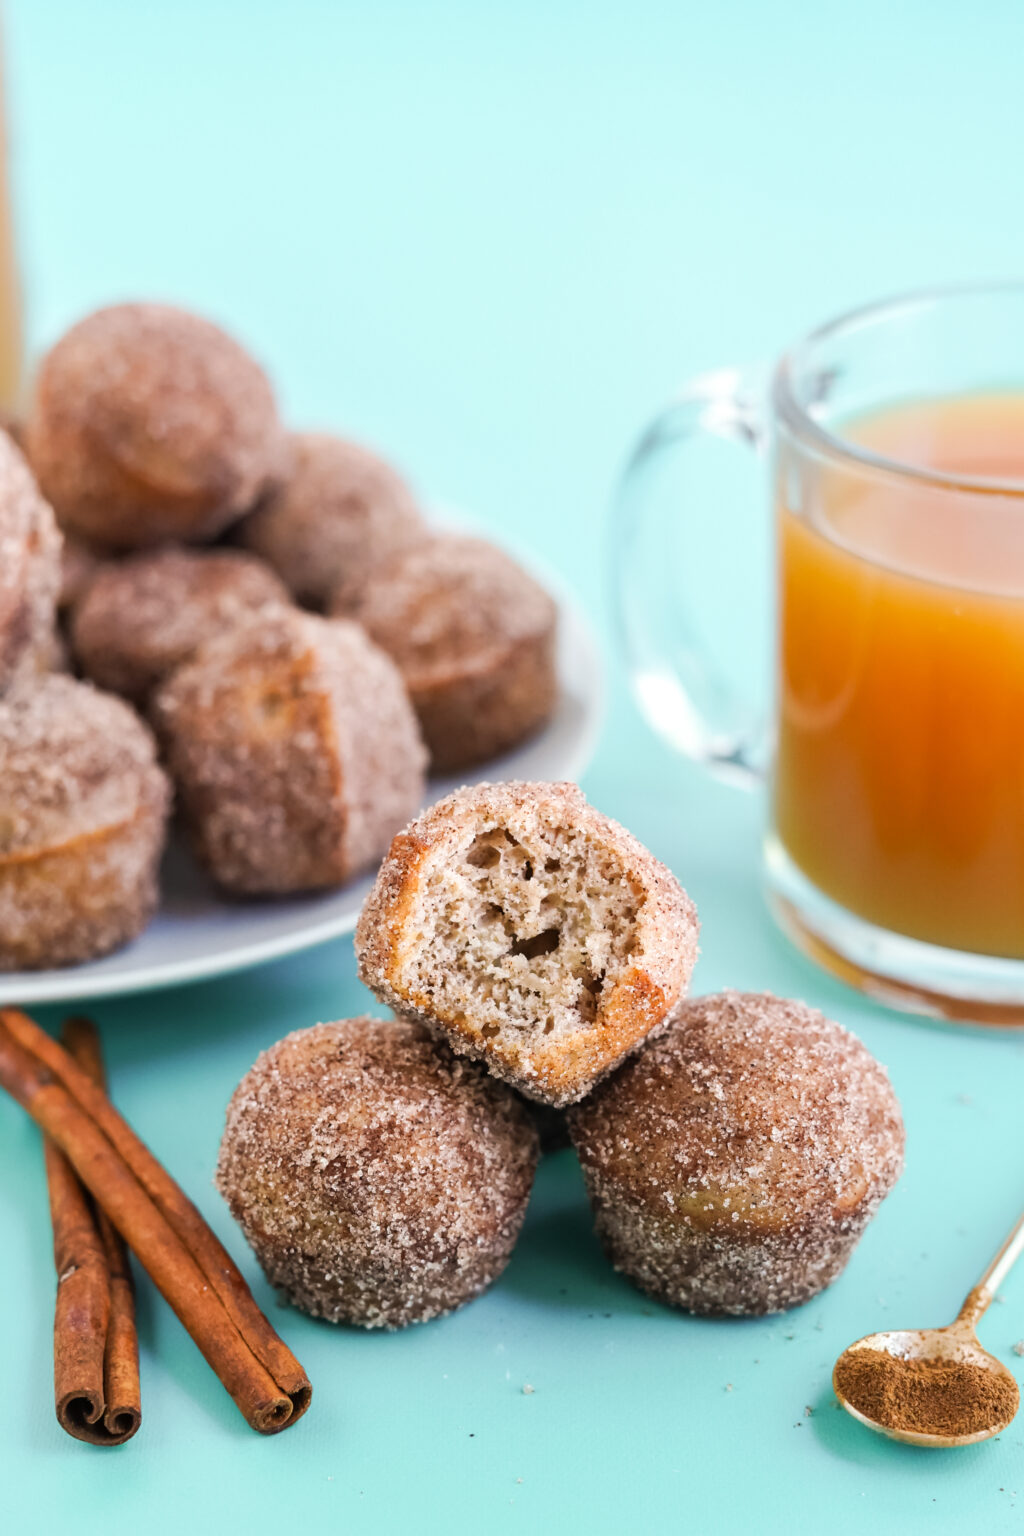 apple cider donut holes stacked on a bright blue table